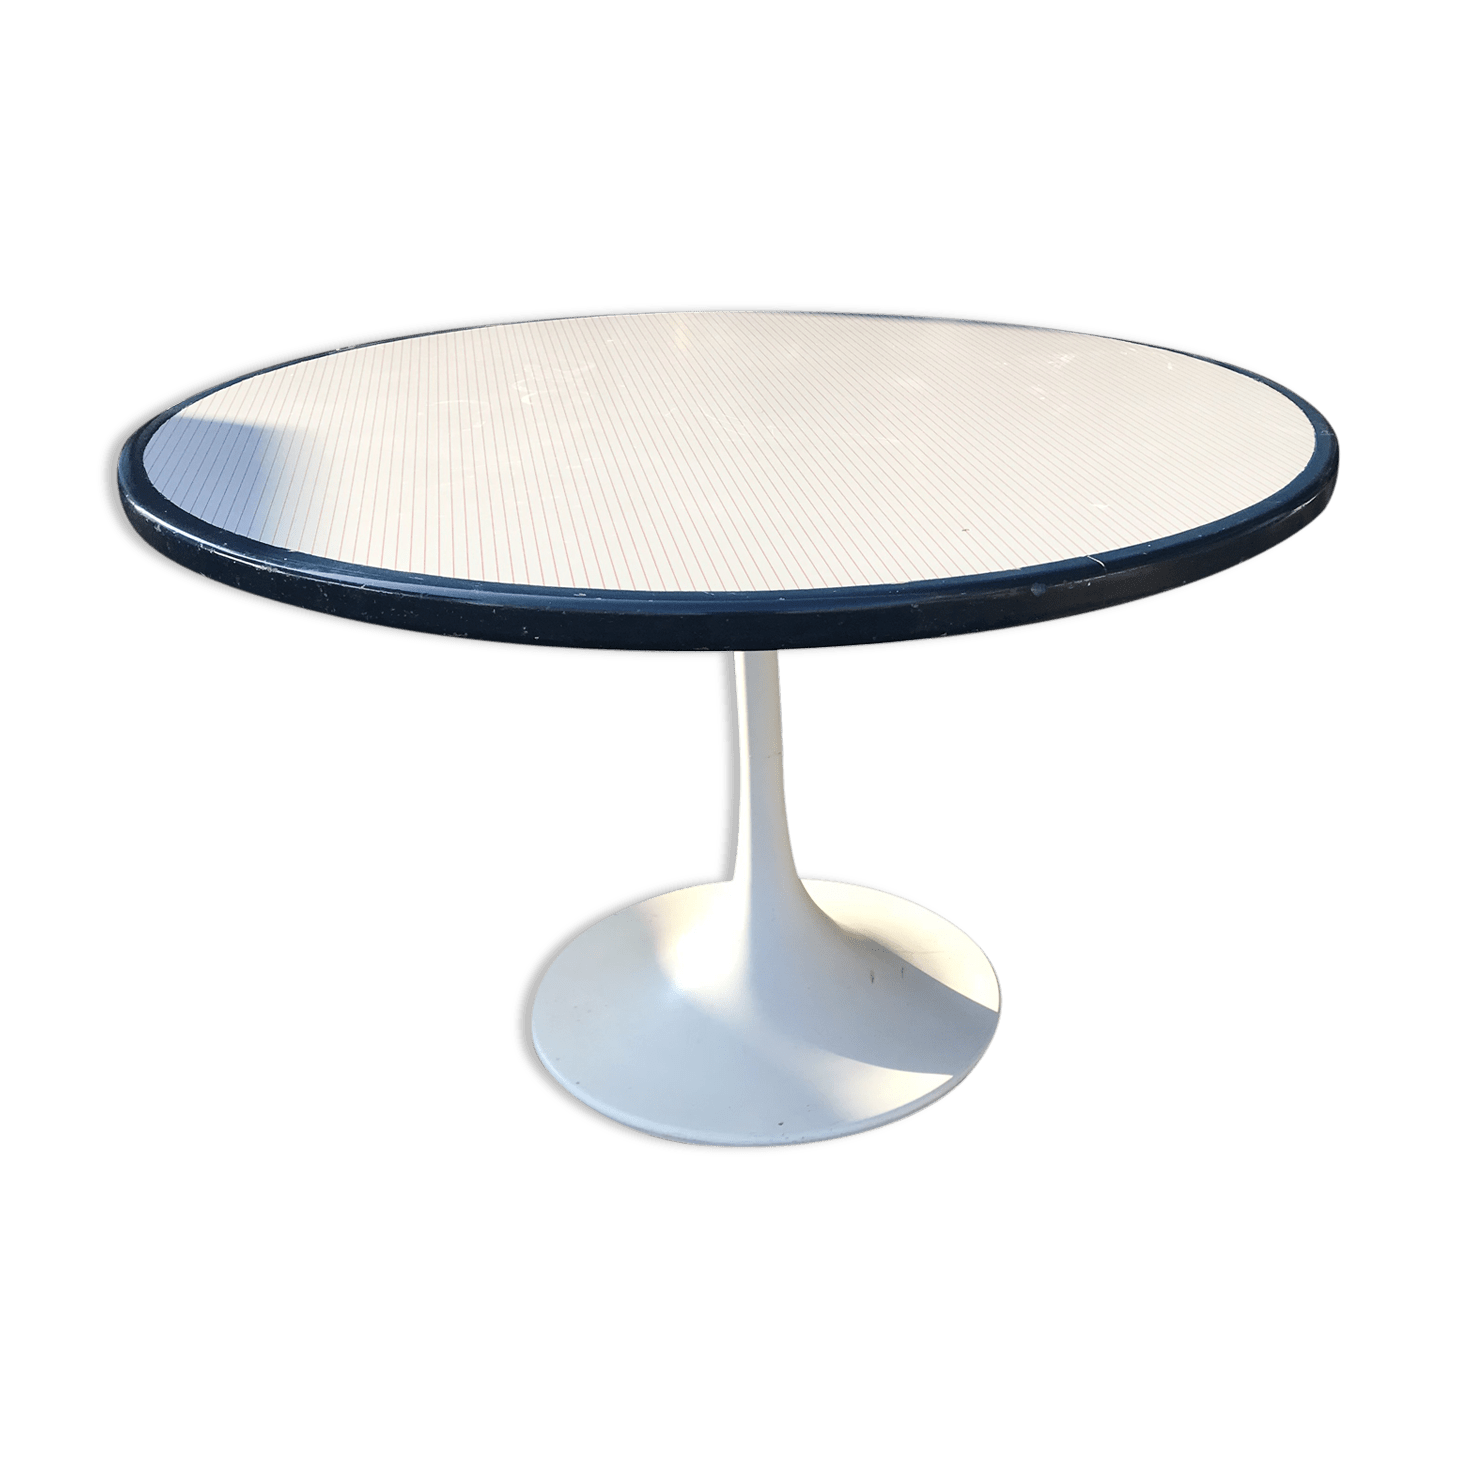 Table Ovale Tulipe Table Ovale Pied Tulipe Table Tulipe Marbre Table Best Of